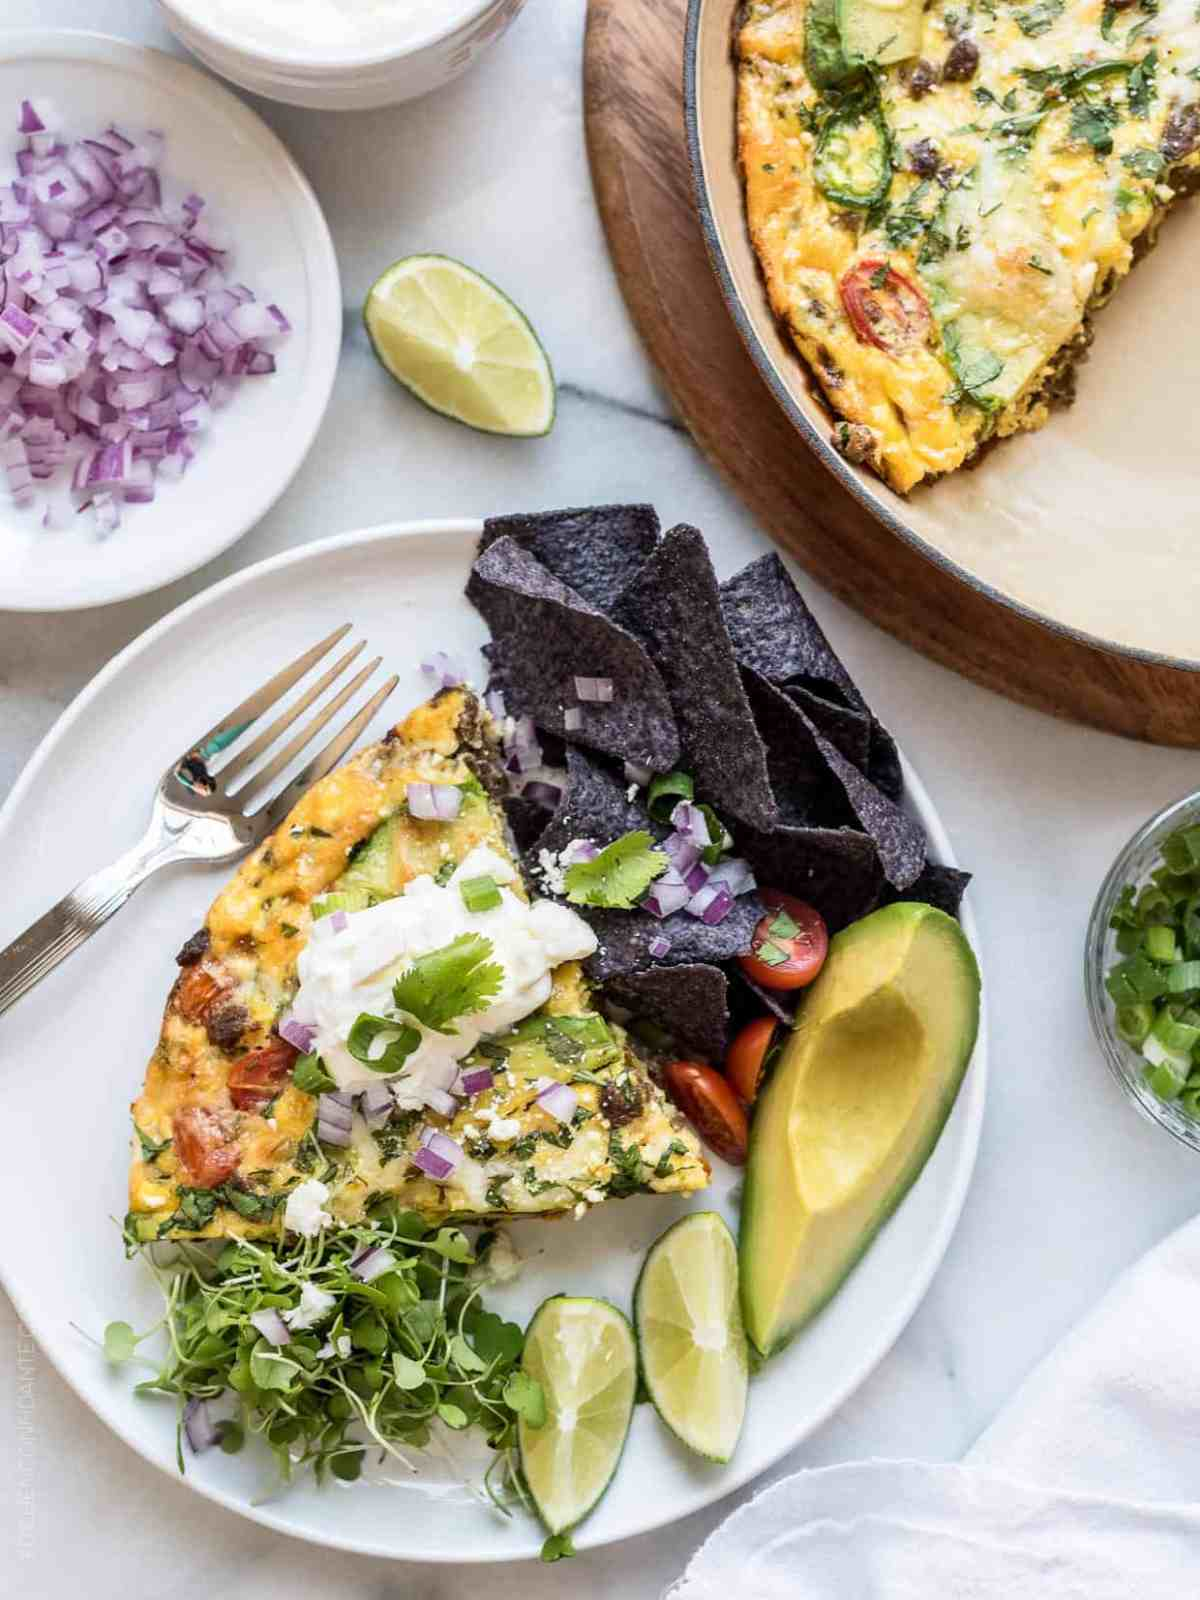 Wedge of taco frittata served with lime wedges, tortilla chips, and avocado.